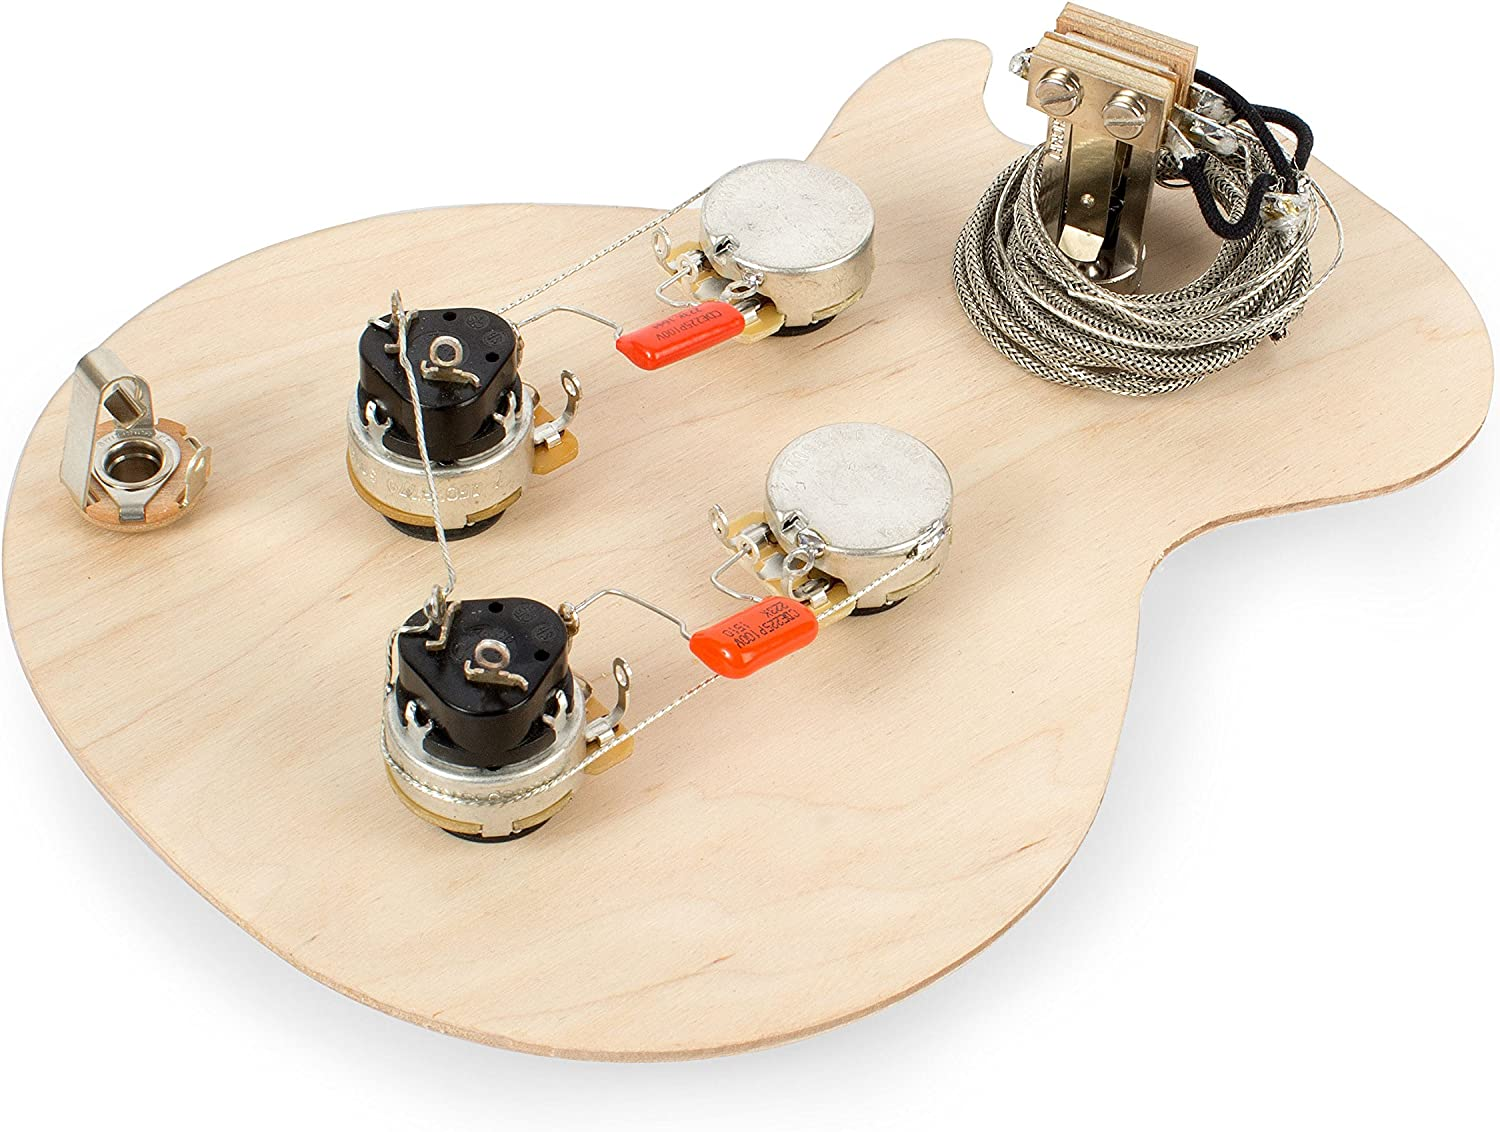 Golden Age Pre-wired Harness for Gibson Les Paul with Push-pull Pots with Standard-shaft CTS Pots